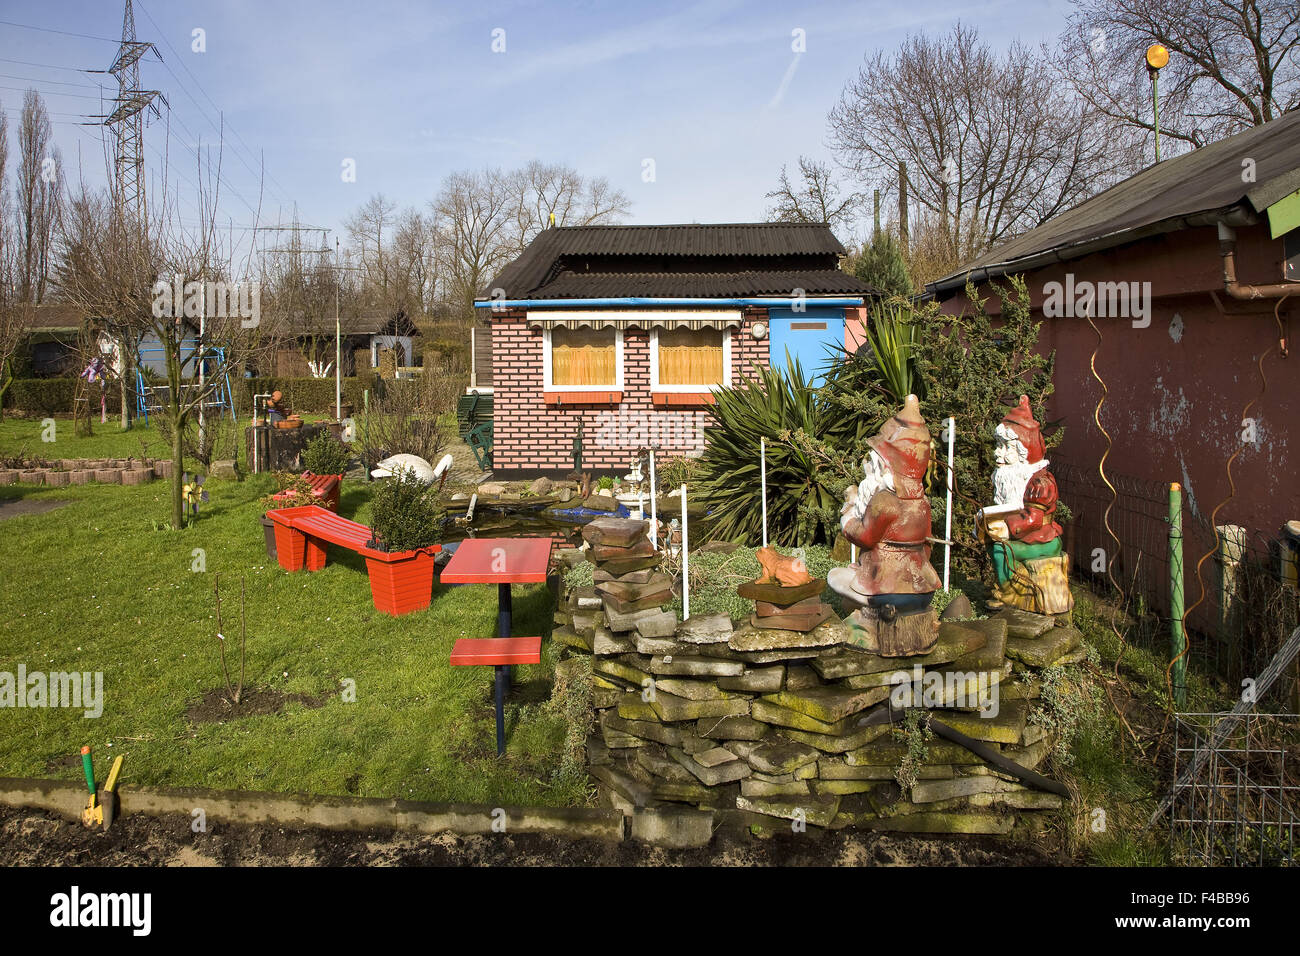 Allotment gardens, Duisburg, Germany. - Stock Image